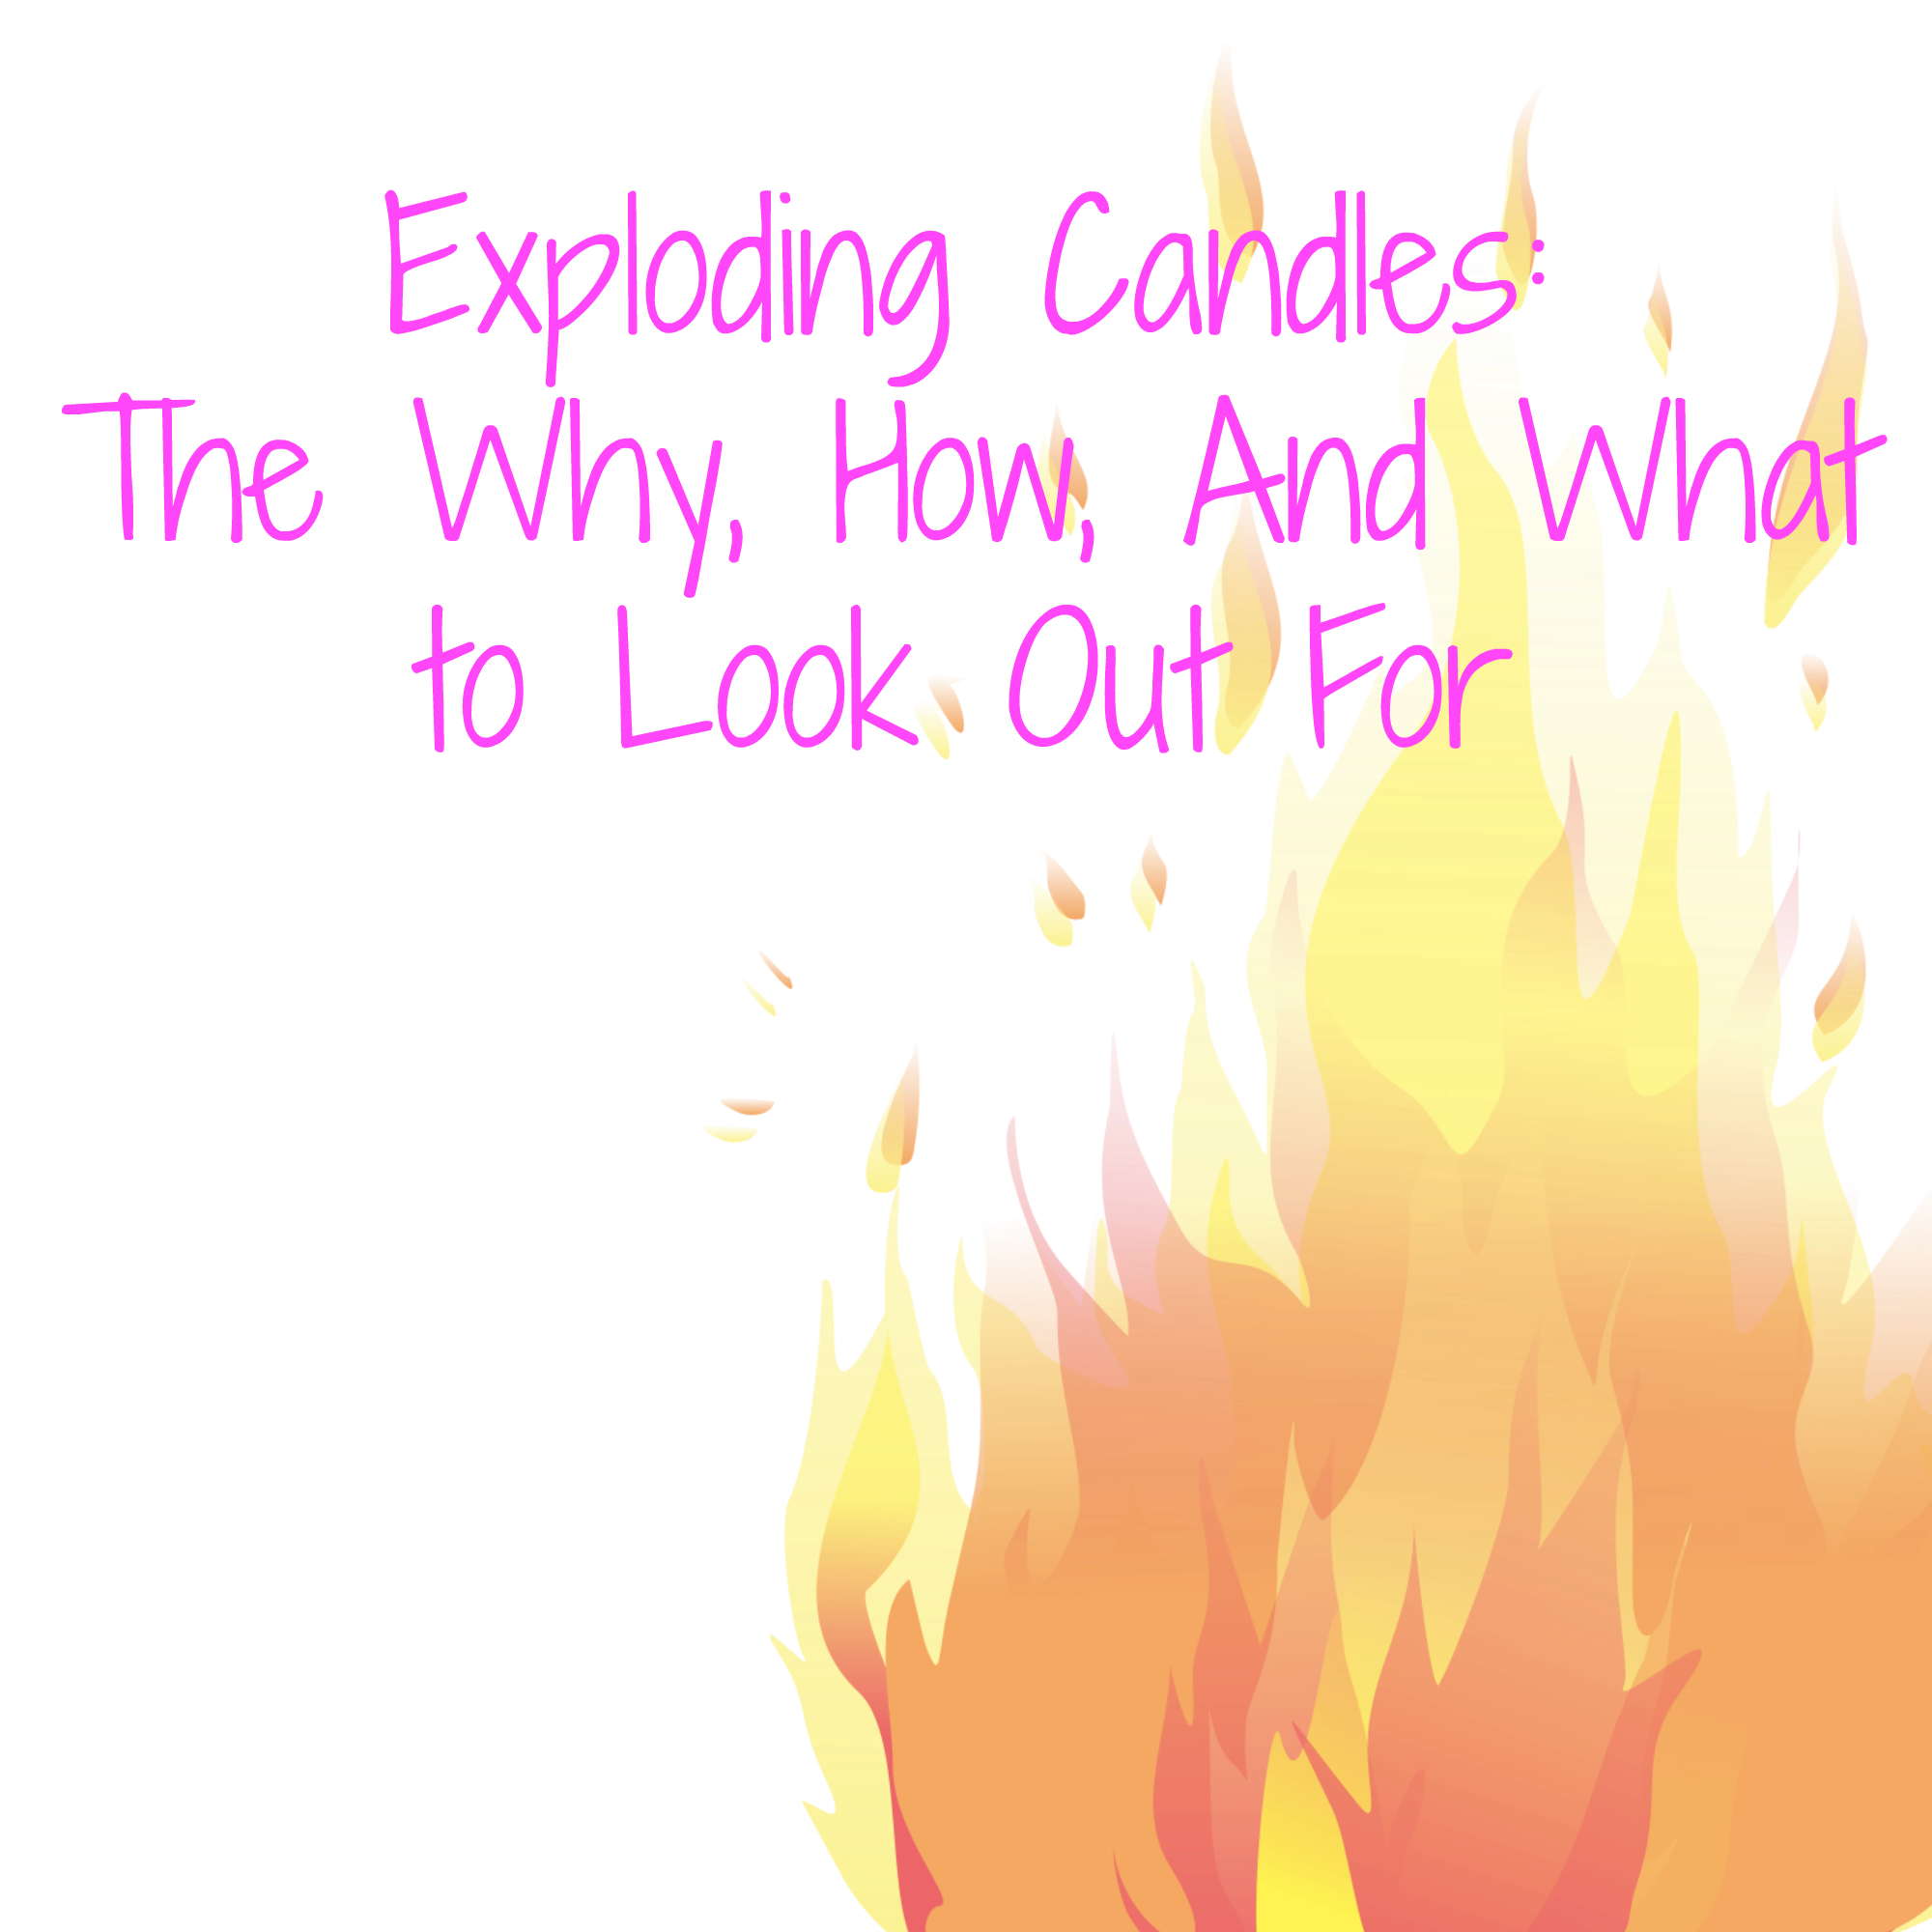 Exploding Candles: The Why, How, And What to Look Out For